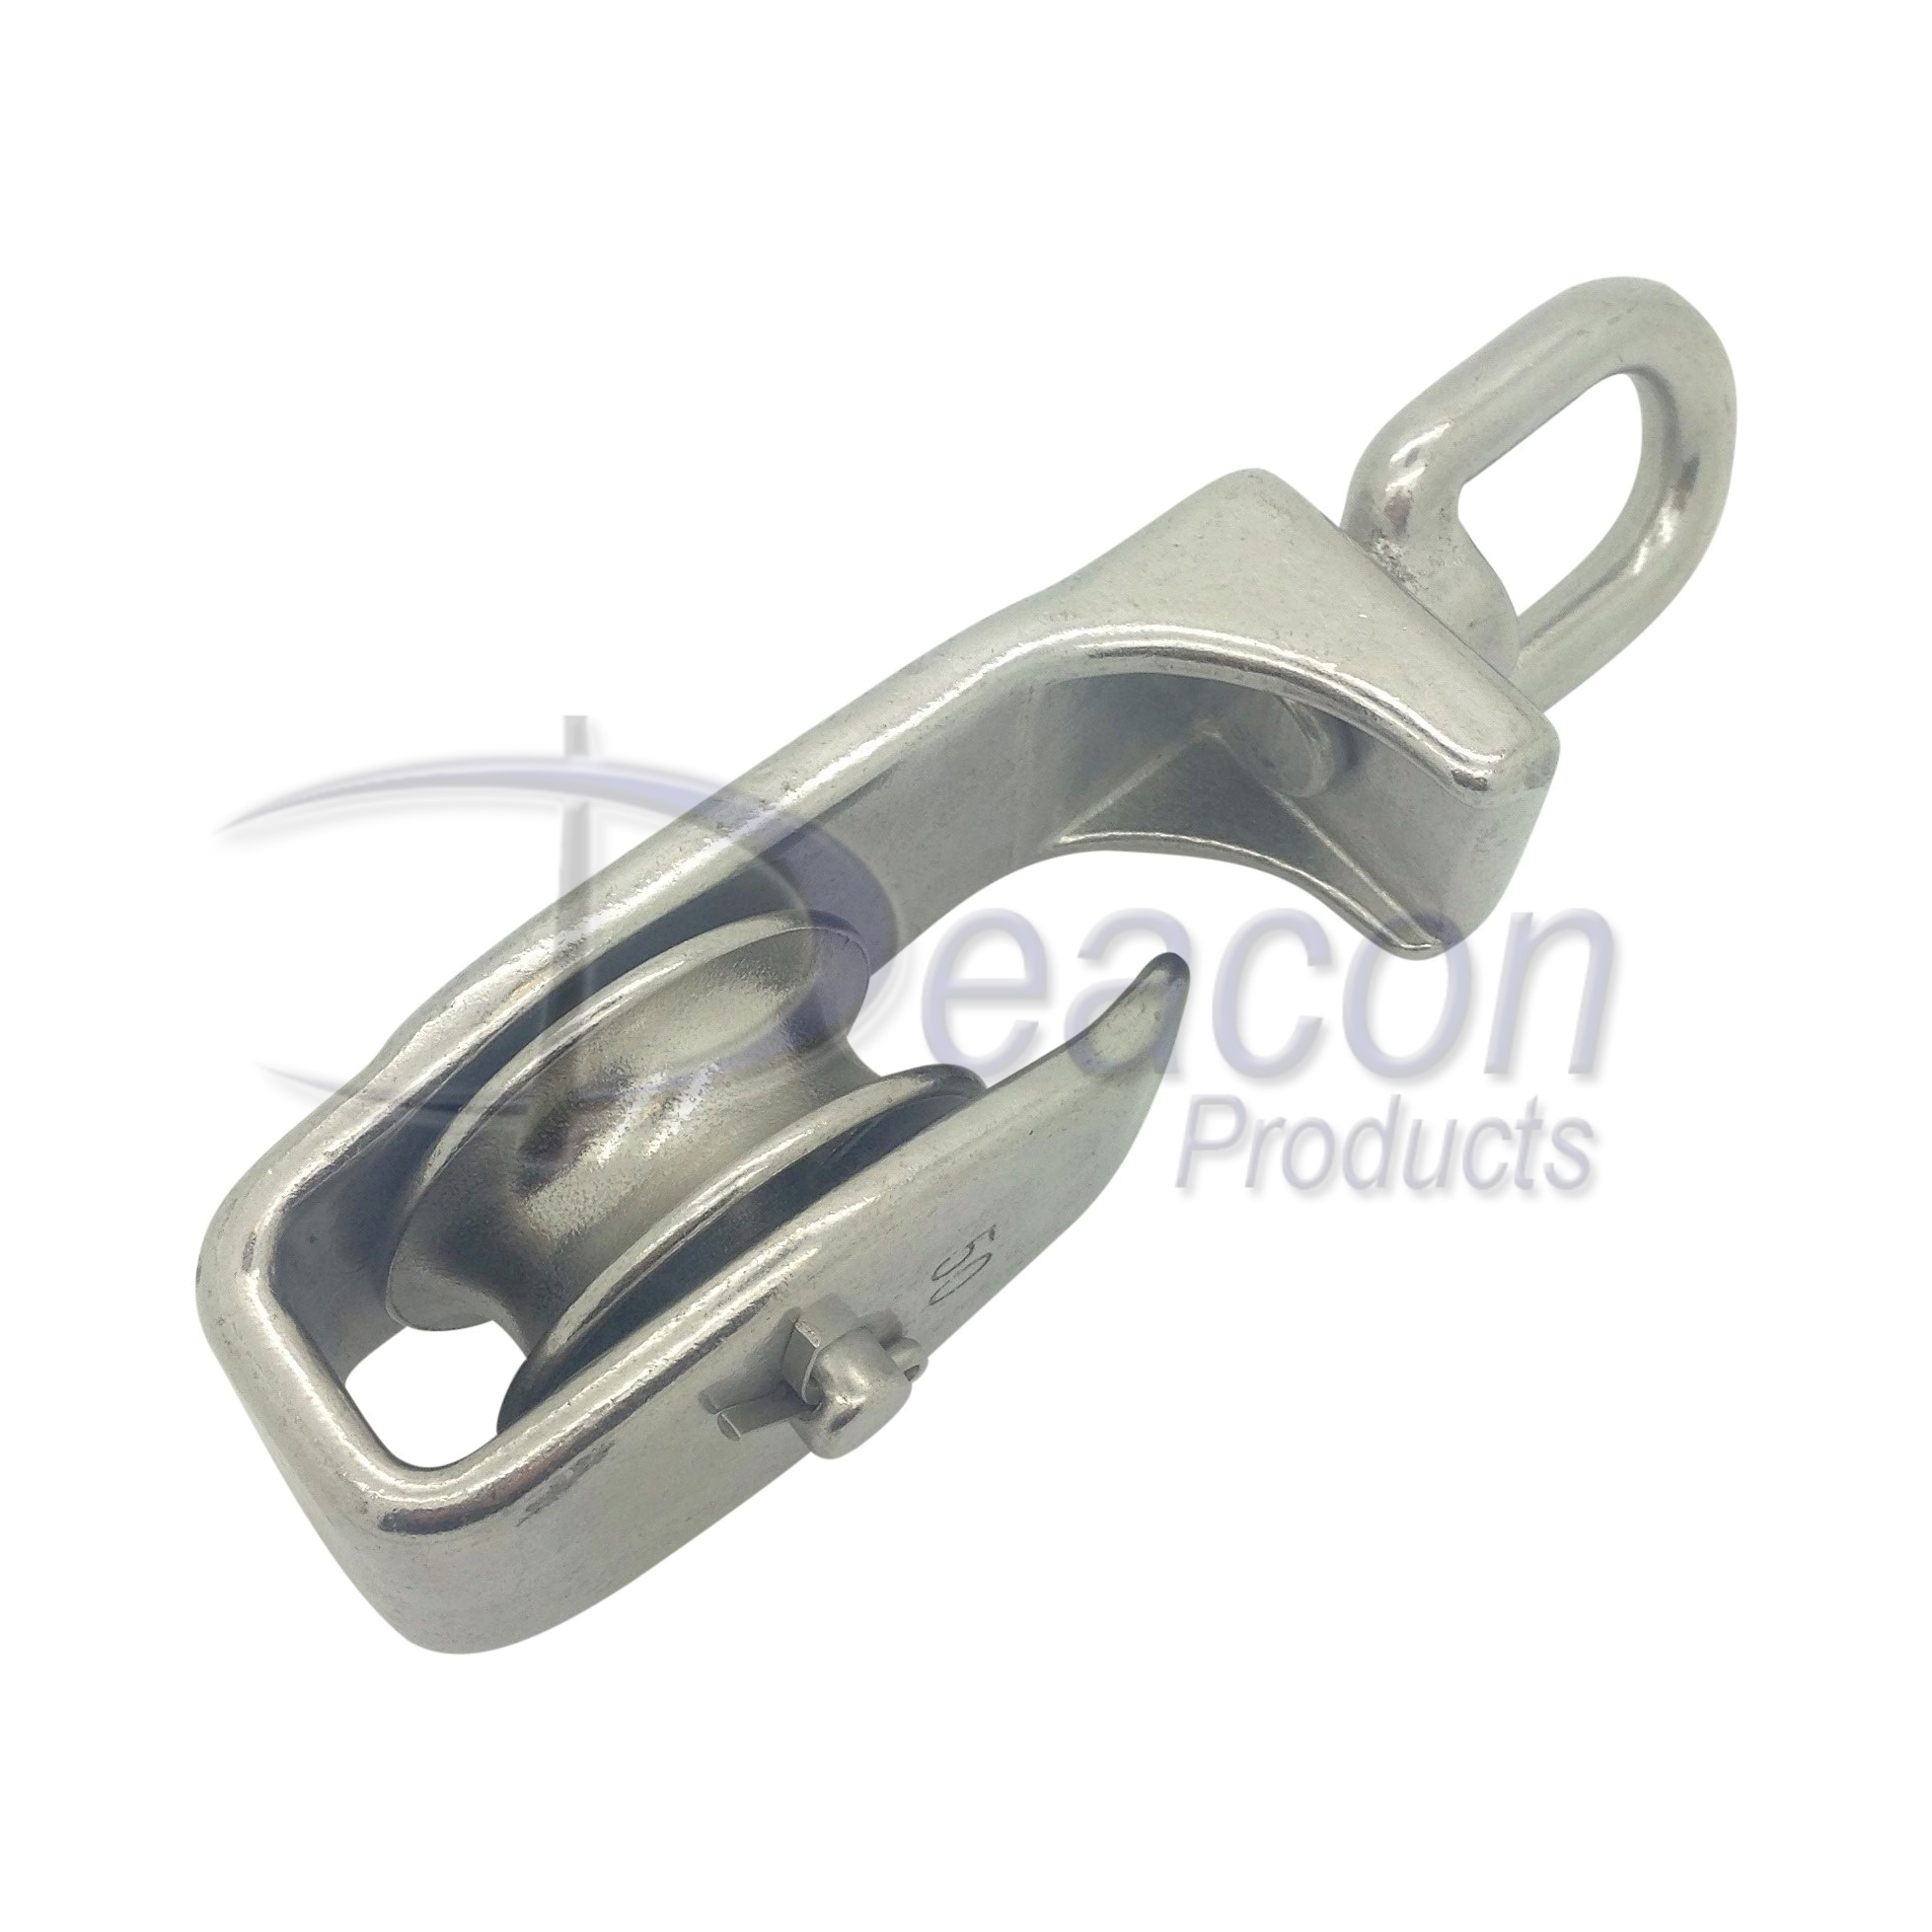 Stainless Steel Single Pulley Block with Open Side – Deacon Products Ltd